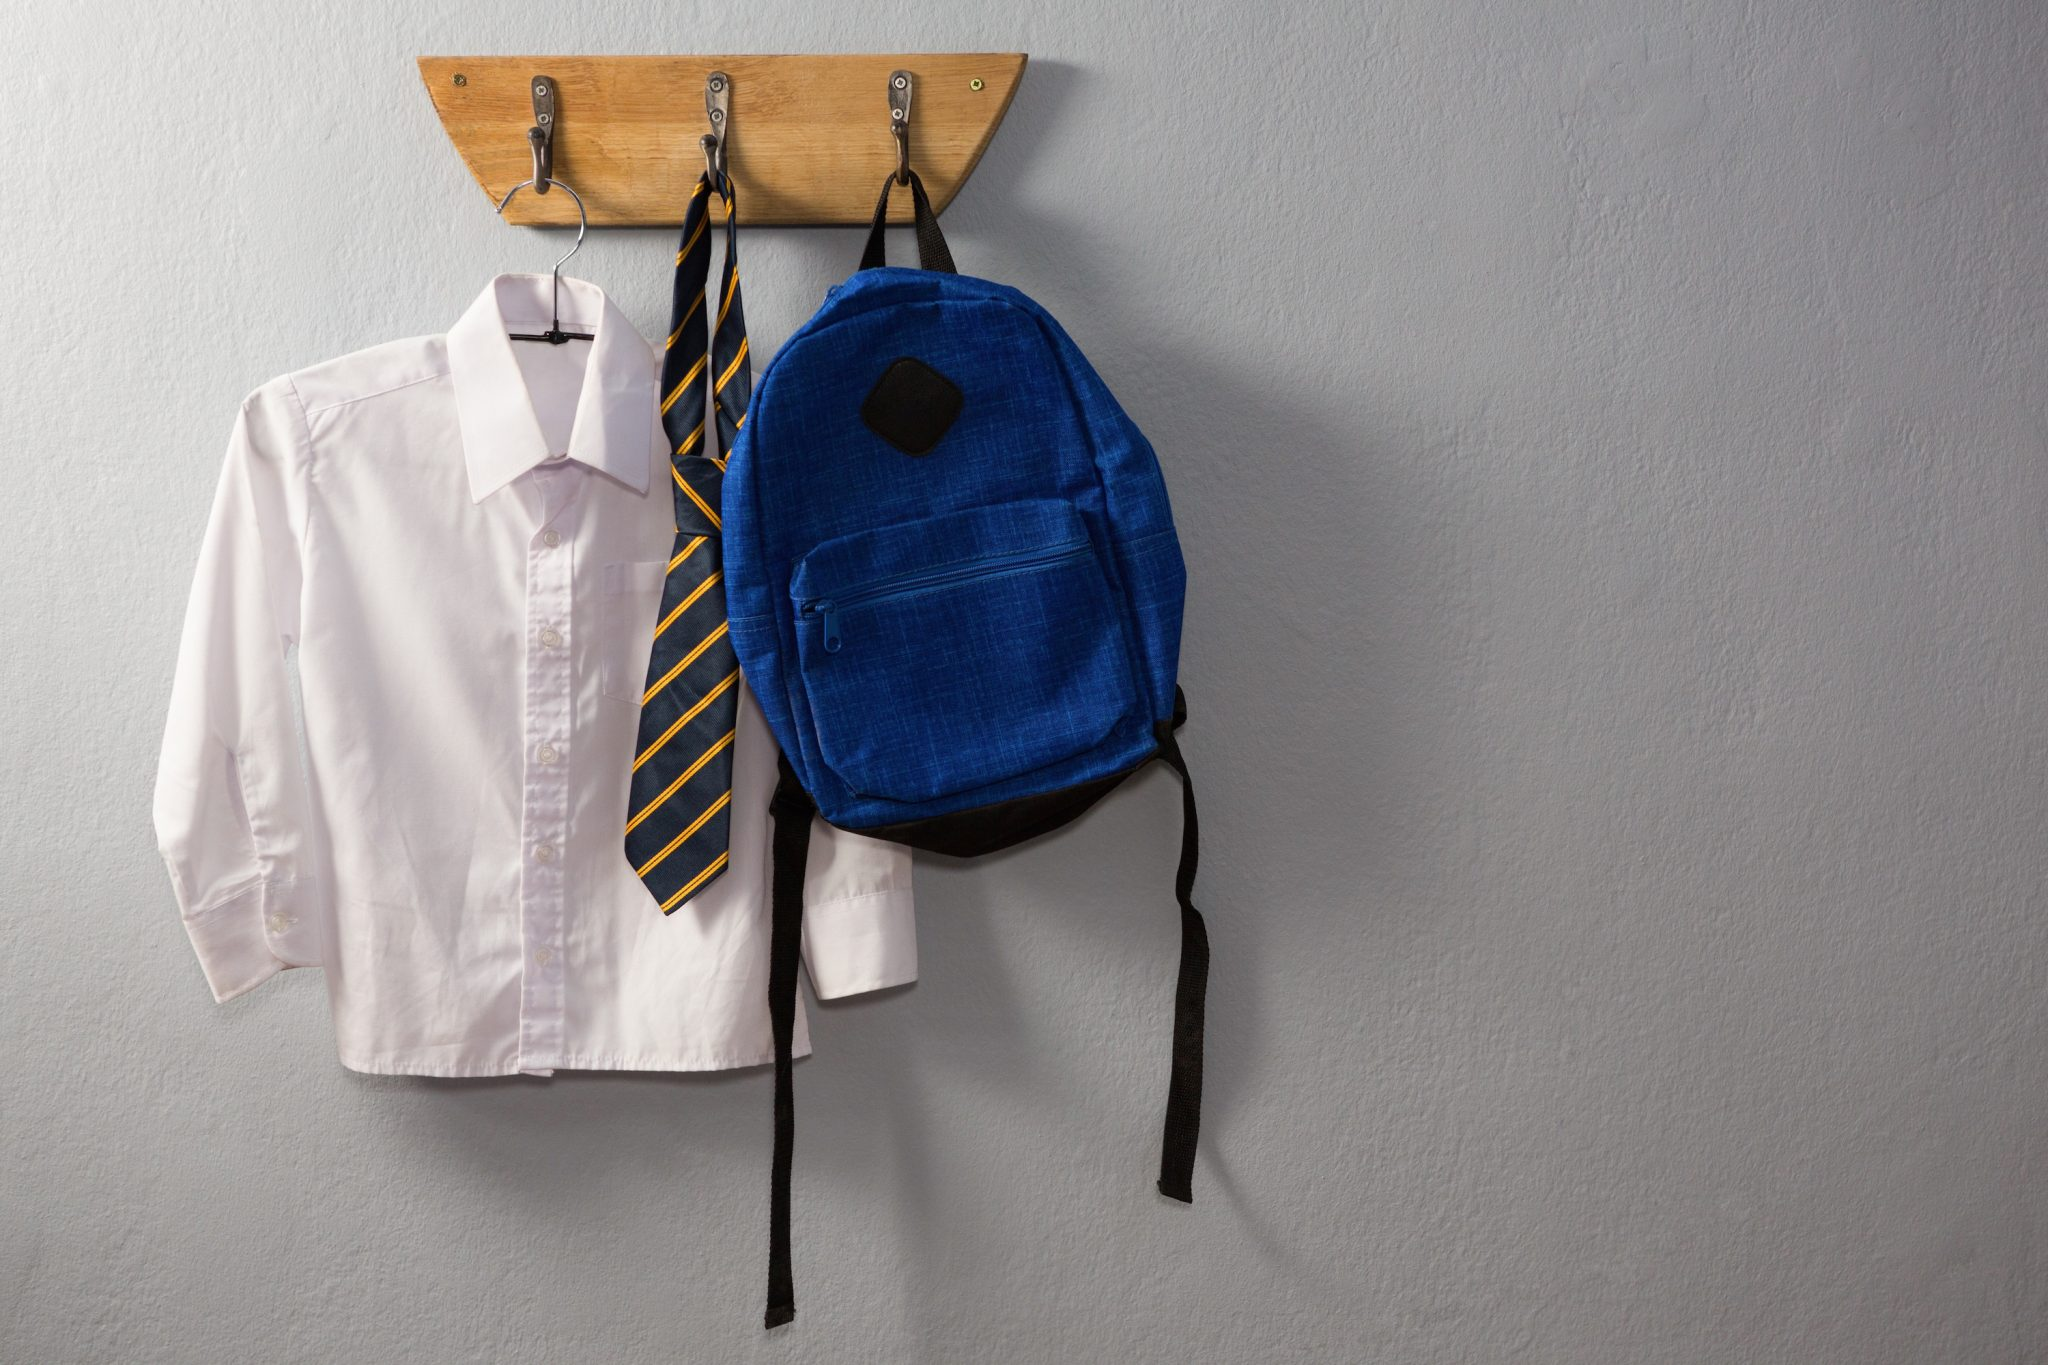 How School Uniforms Save Money